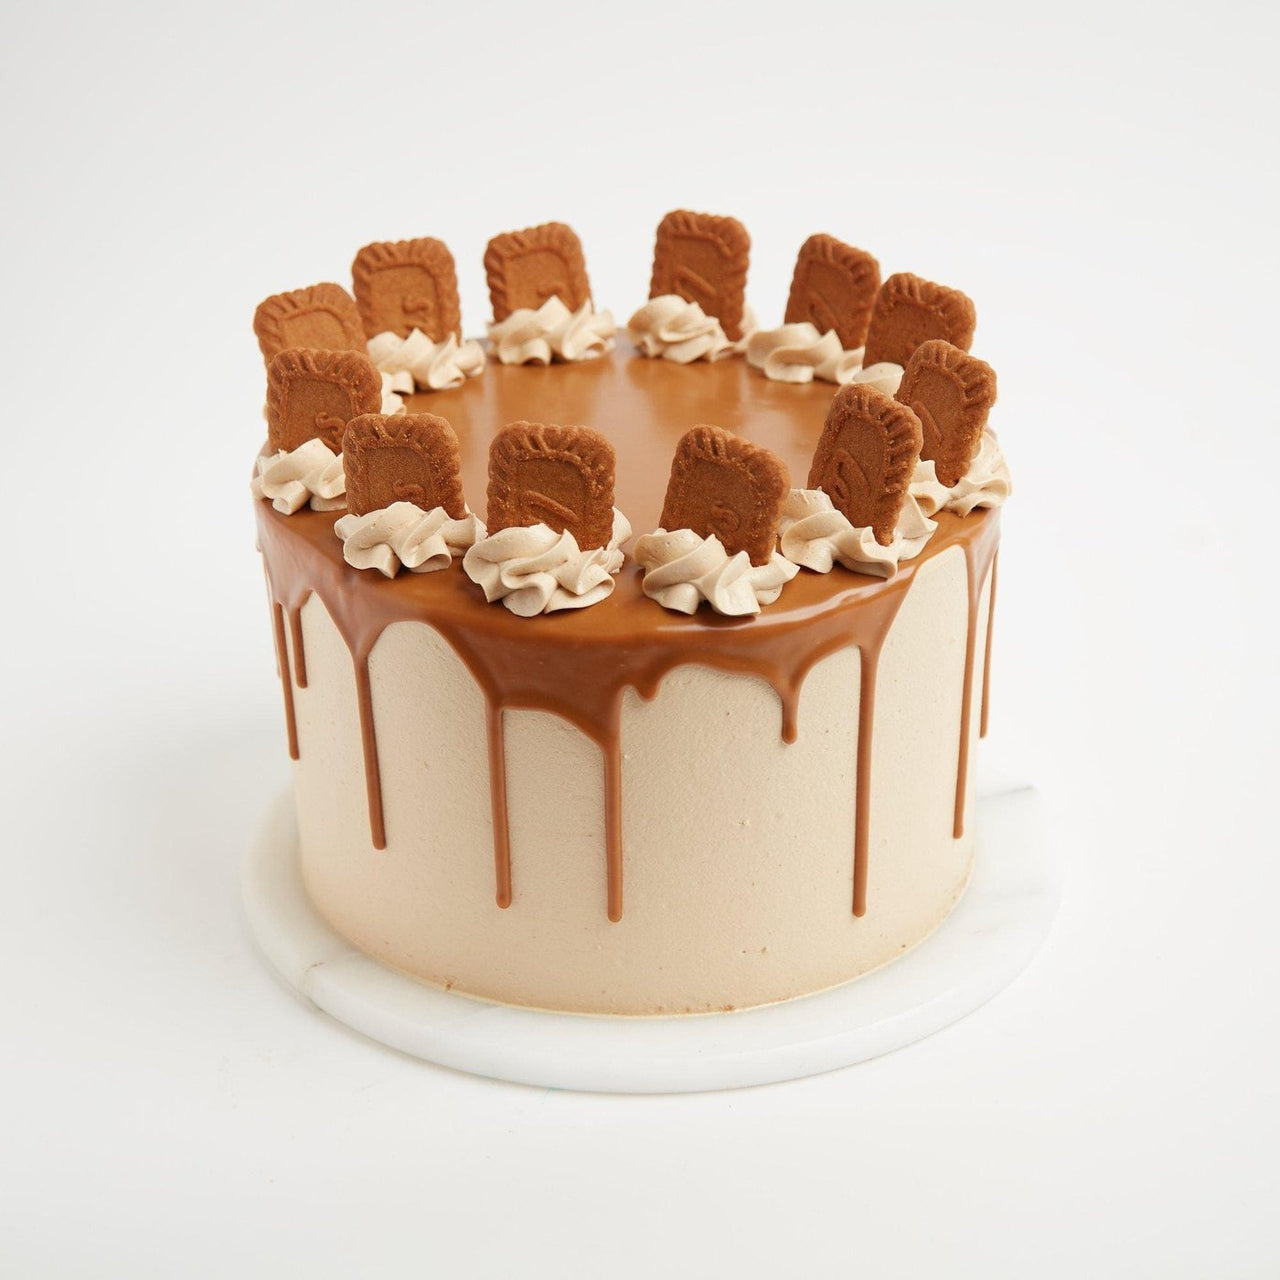 Biscoff Cake by Crumbs & Doilies